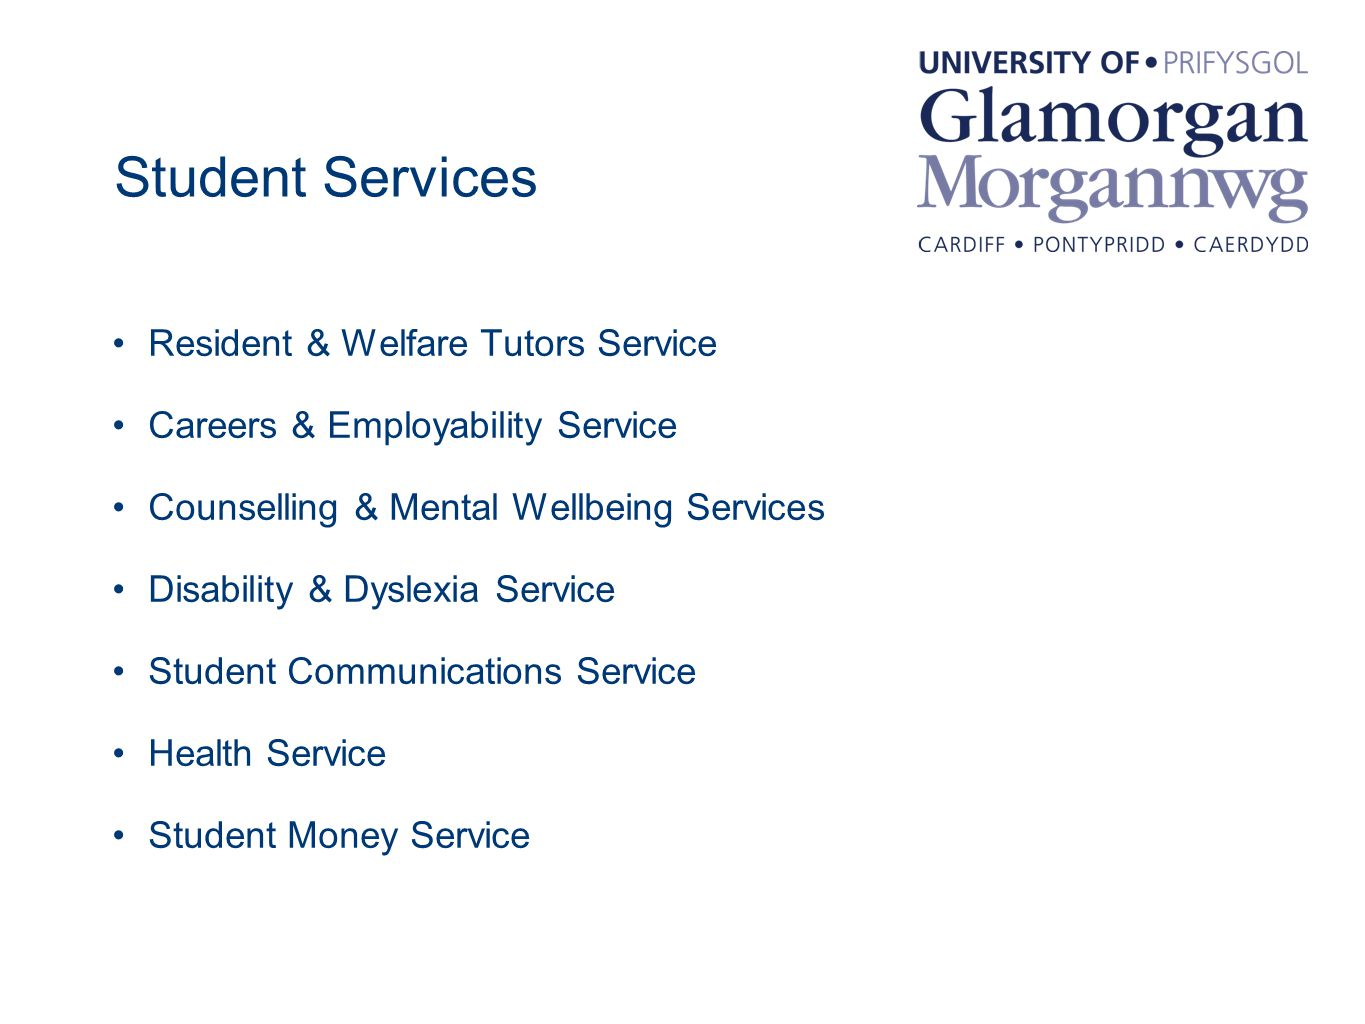 Student Services Resident & Welfare Tutors Service Careers & Employability Service Counselling & Mental Wellbeing Services Disability & Dyslexia Service Student Communications Service Health Service Student Money Service